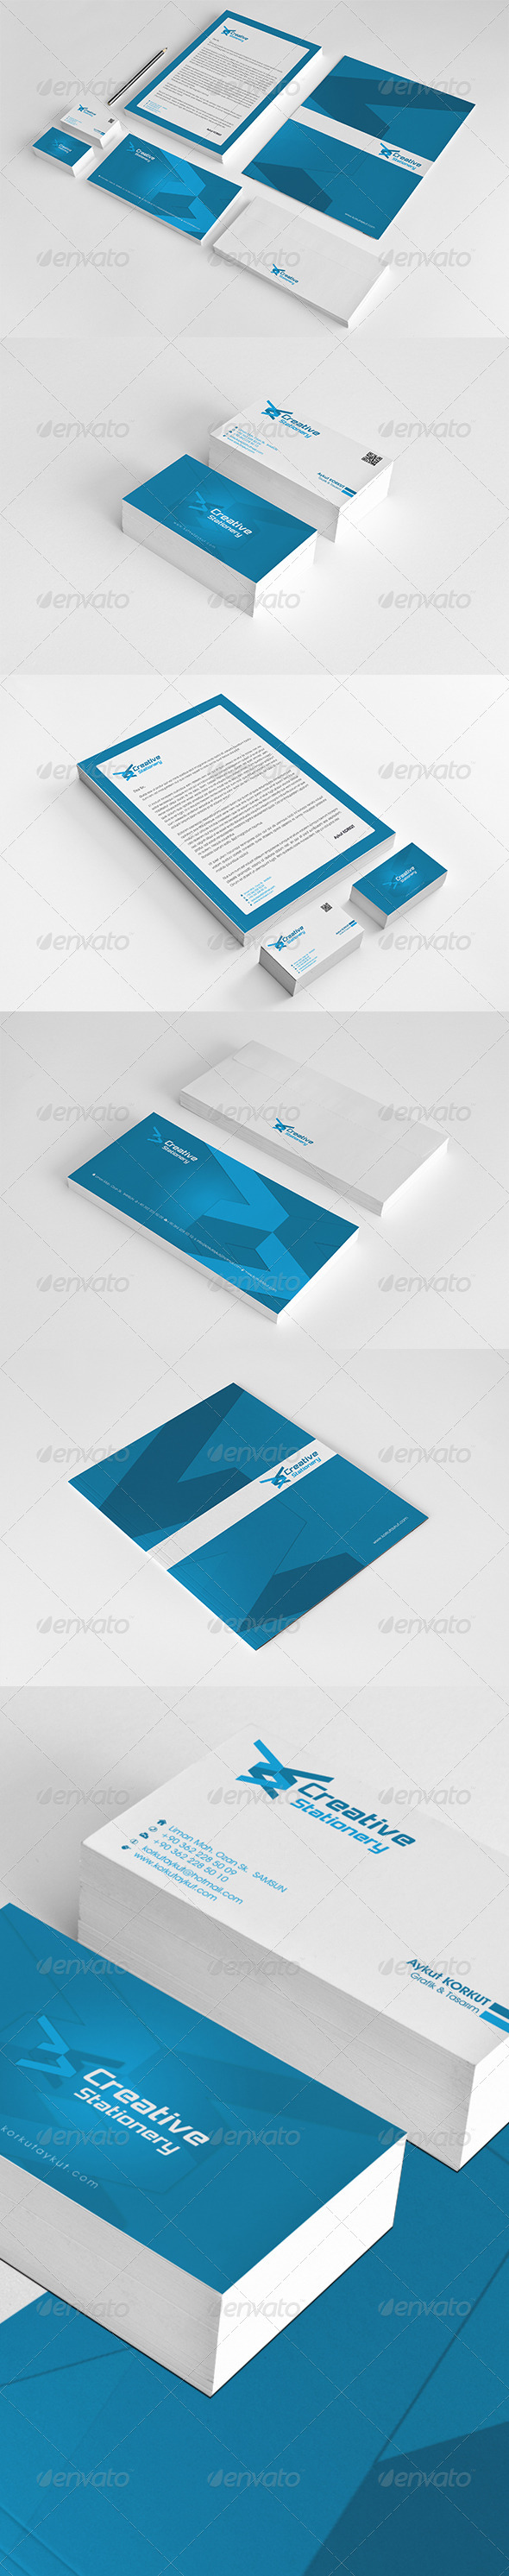 GraphicRiver Creative Corporate Identity Package 6813249